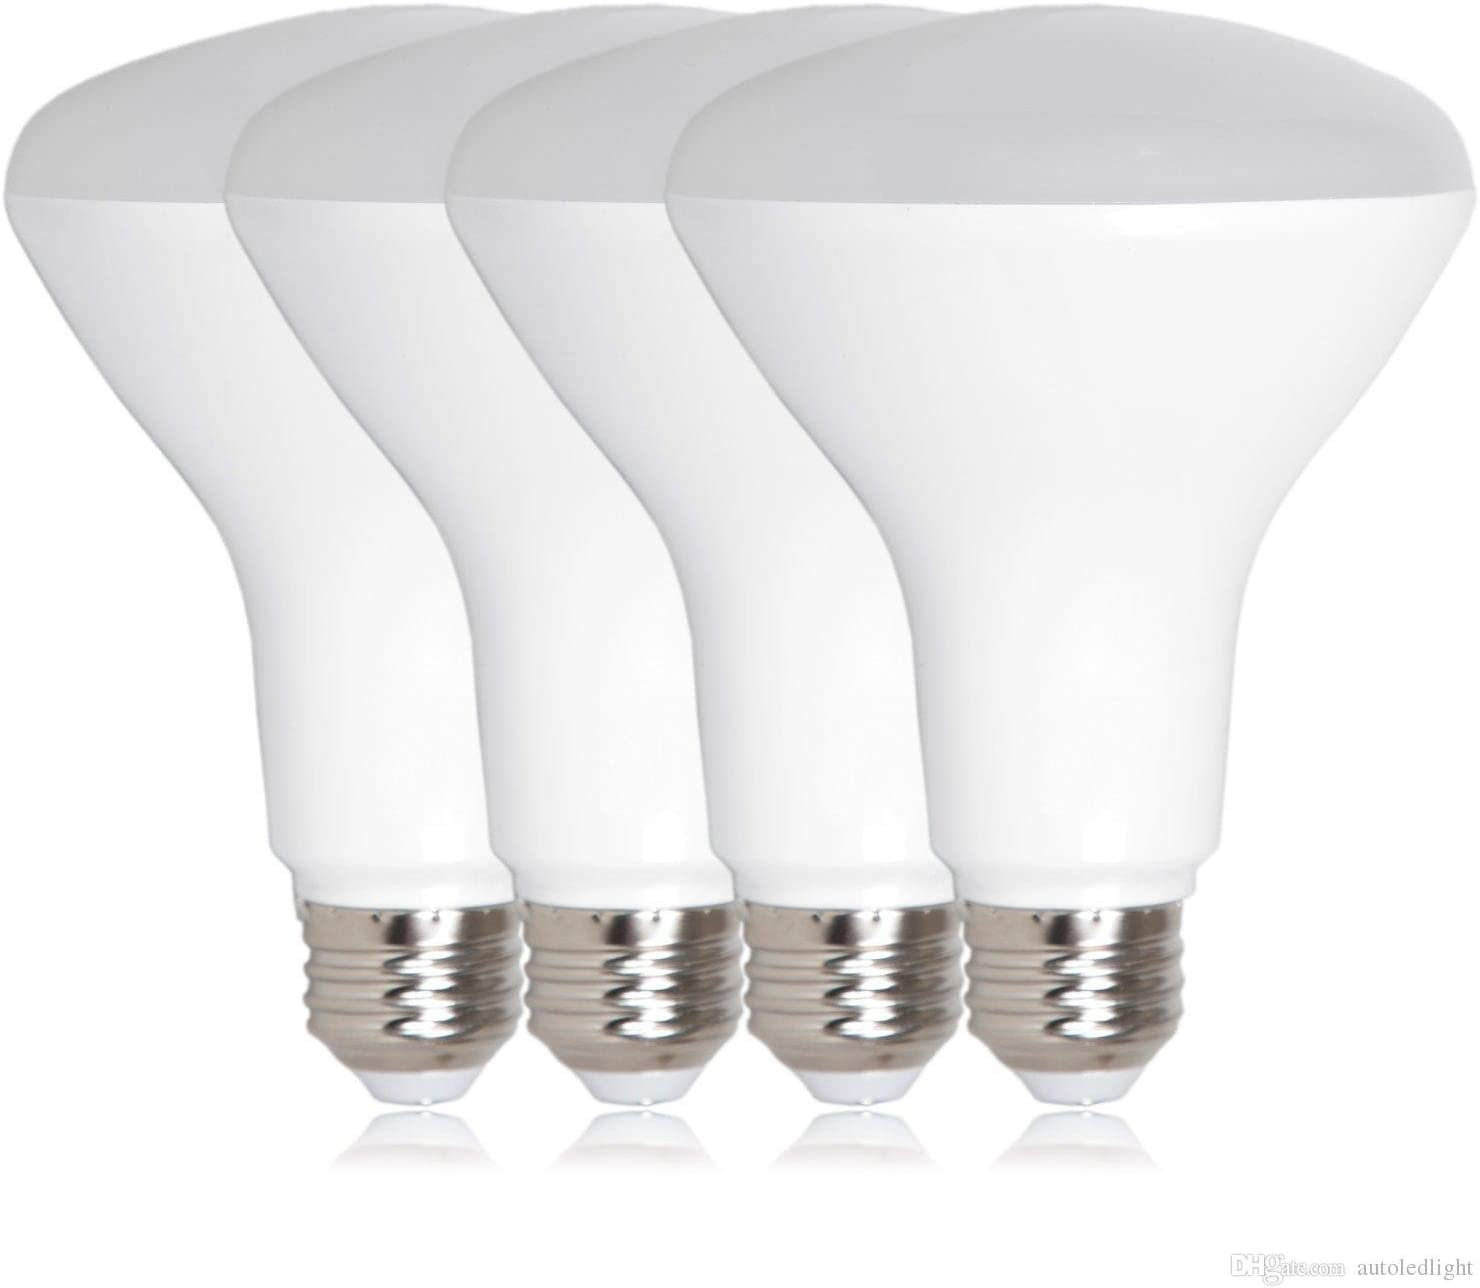 65W Replacement 24-Pack 10 Watt LED BR30 Dimmable Flood Bulb Indoor//Outdoor Rated 2700K Soft White 650 Lumens UL /& Energy Star